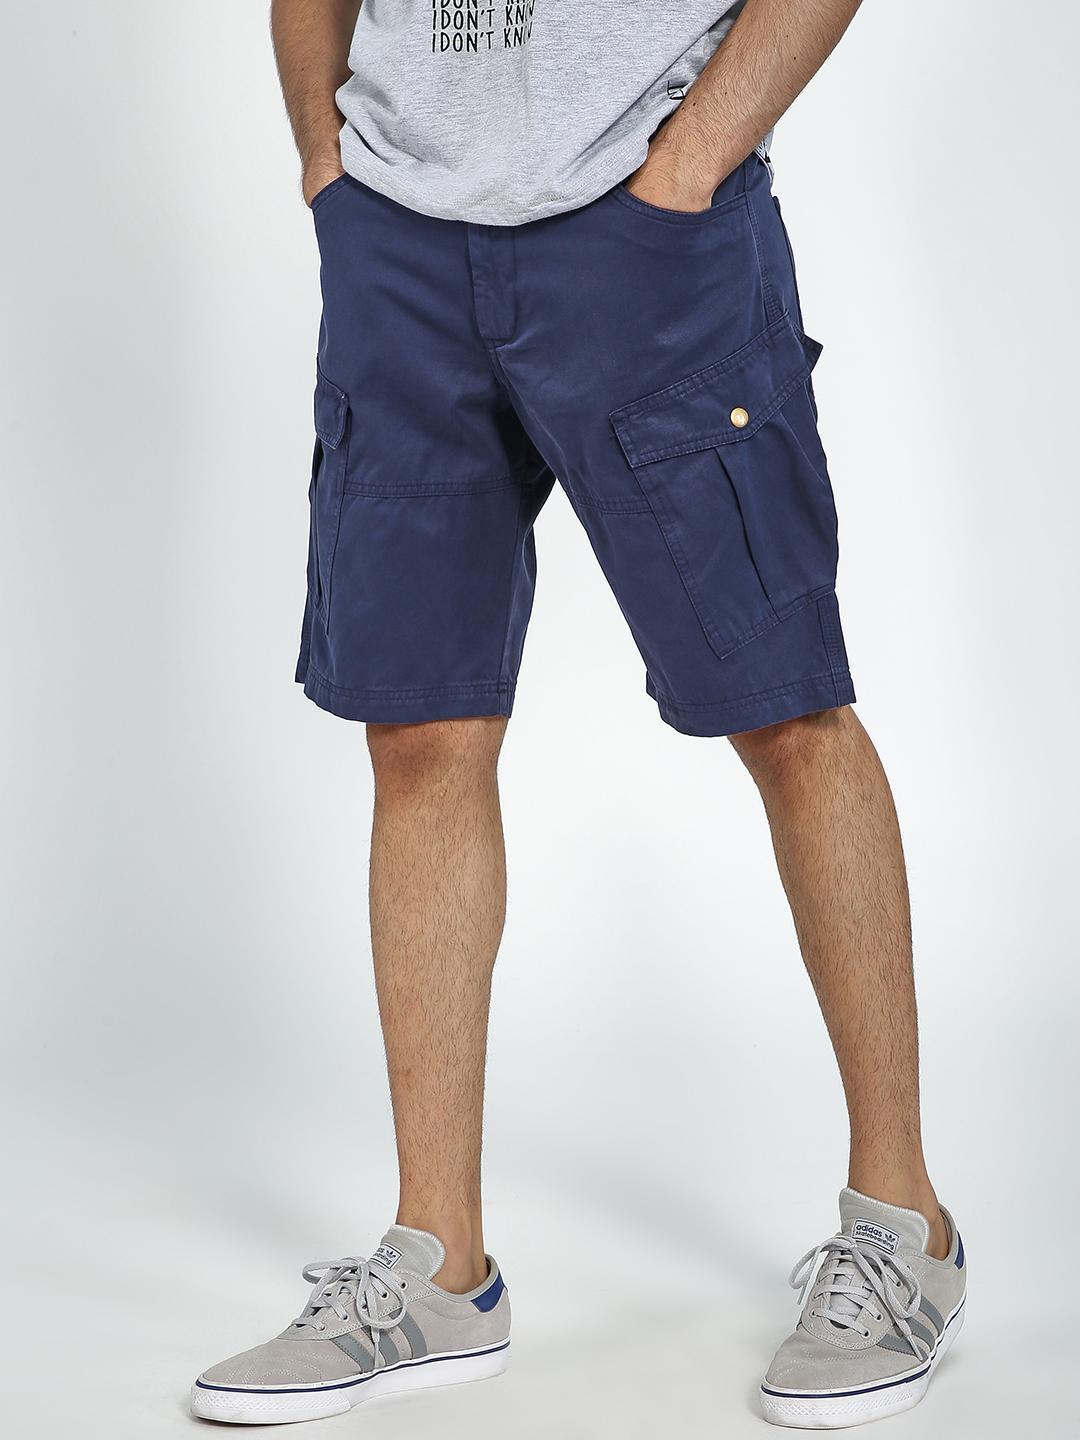 Blue Saint Navy Cargo Fit Shorts 1